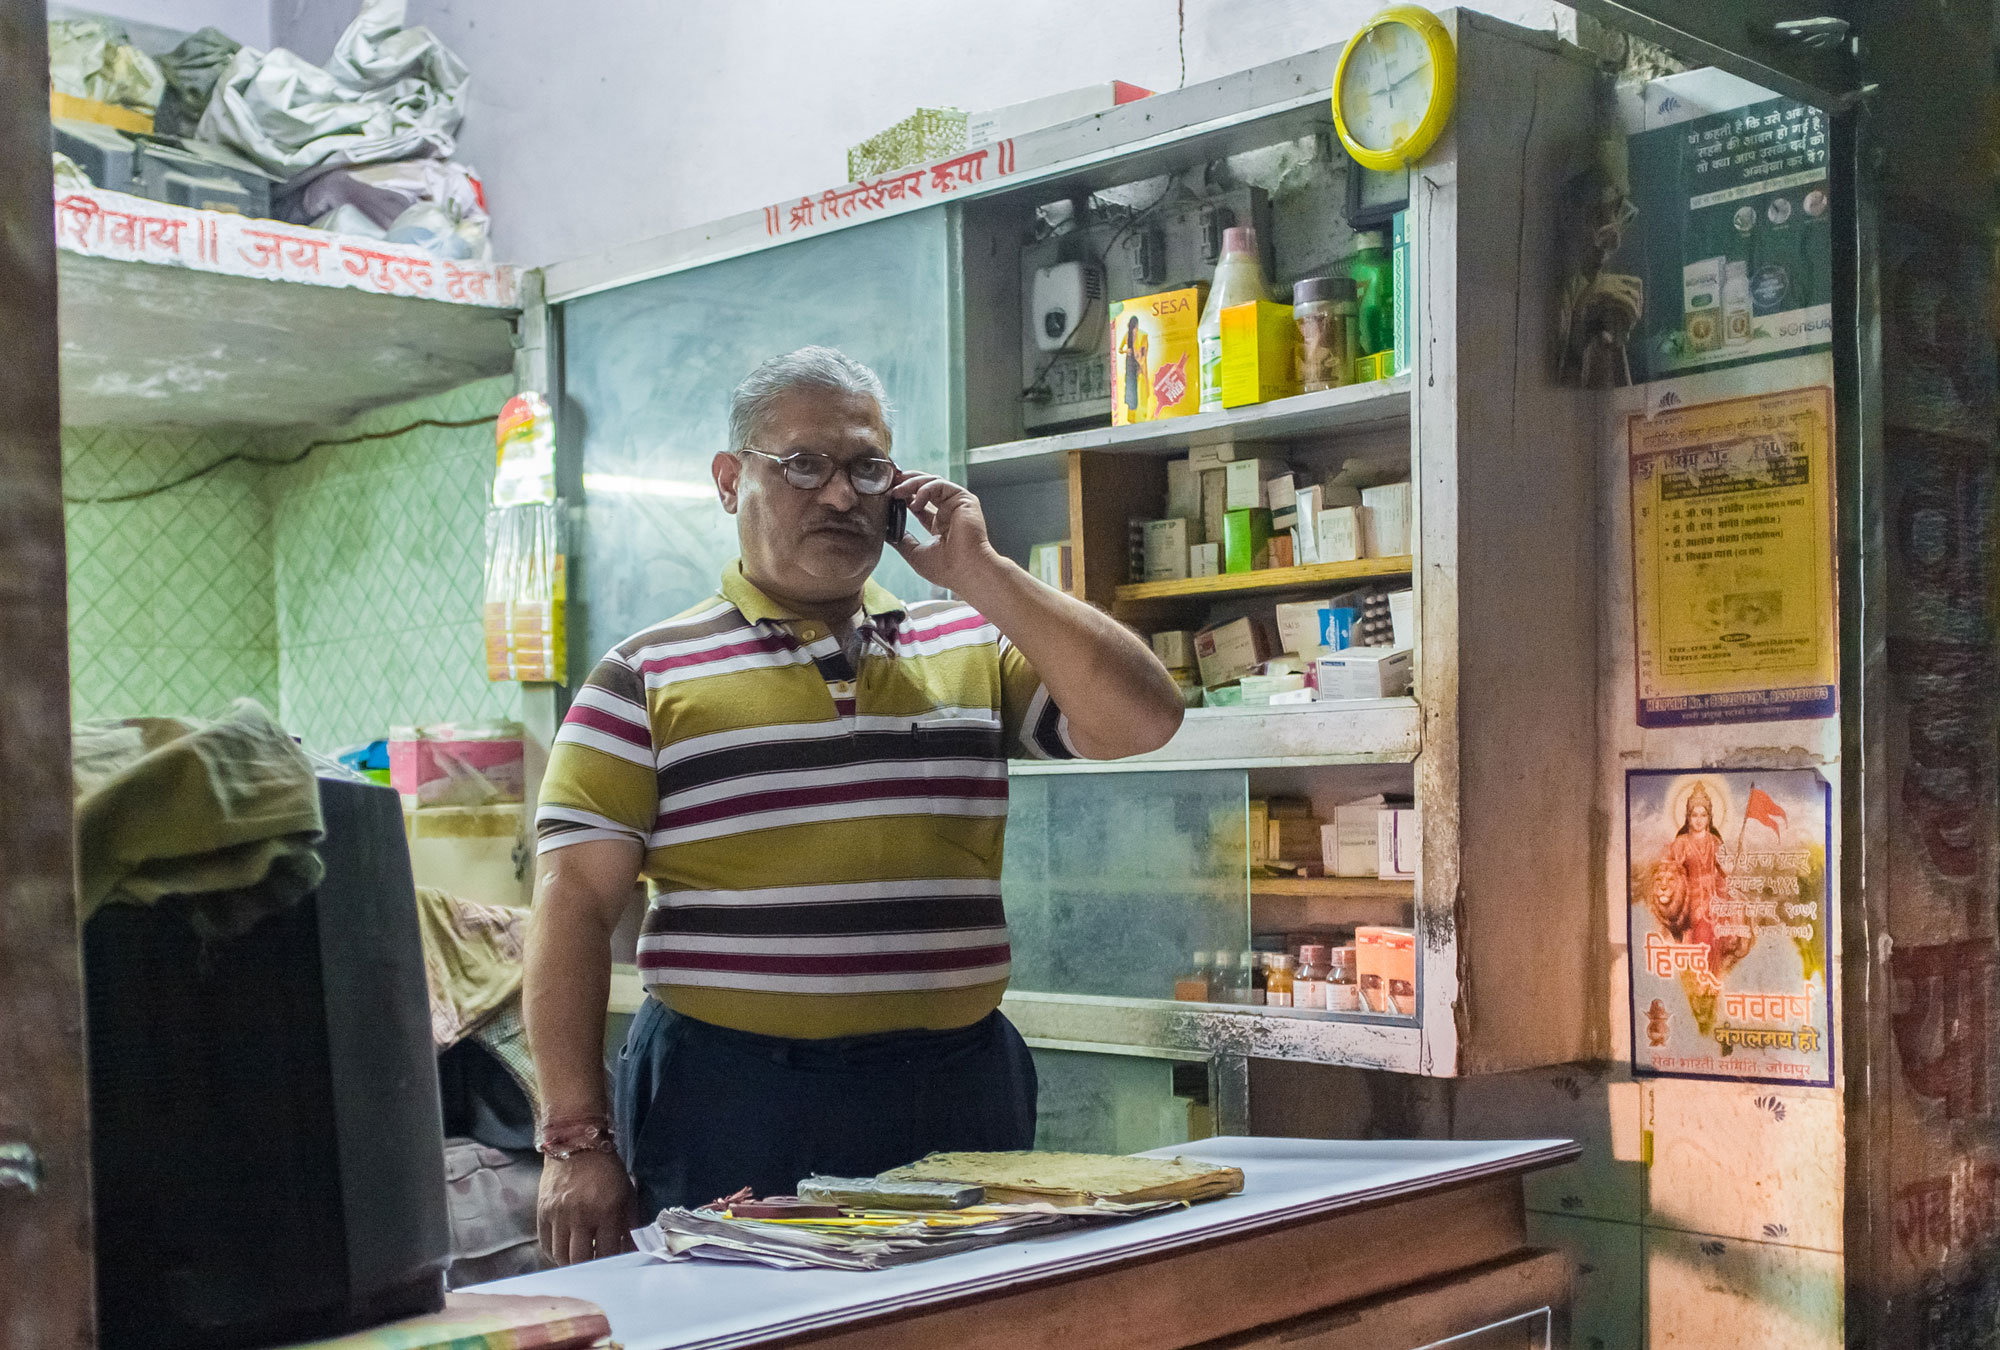 Man stands in small shop talking on phone